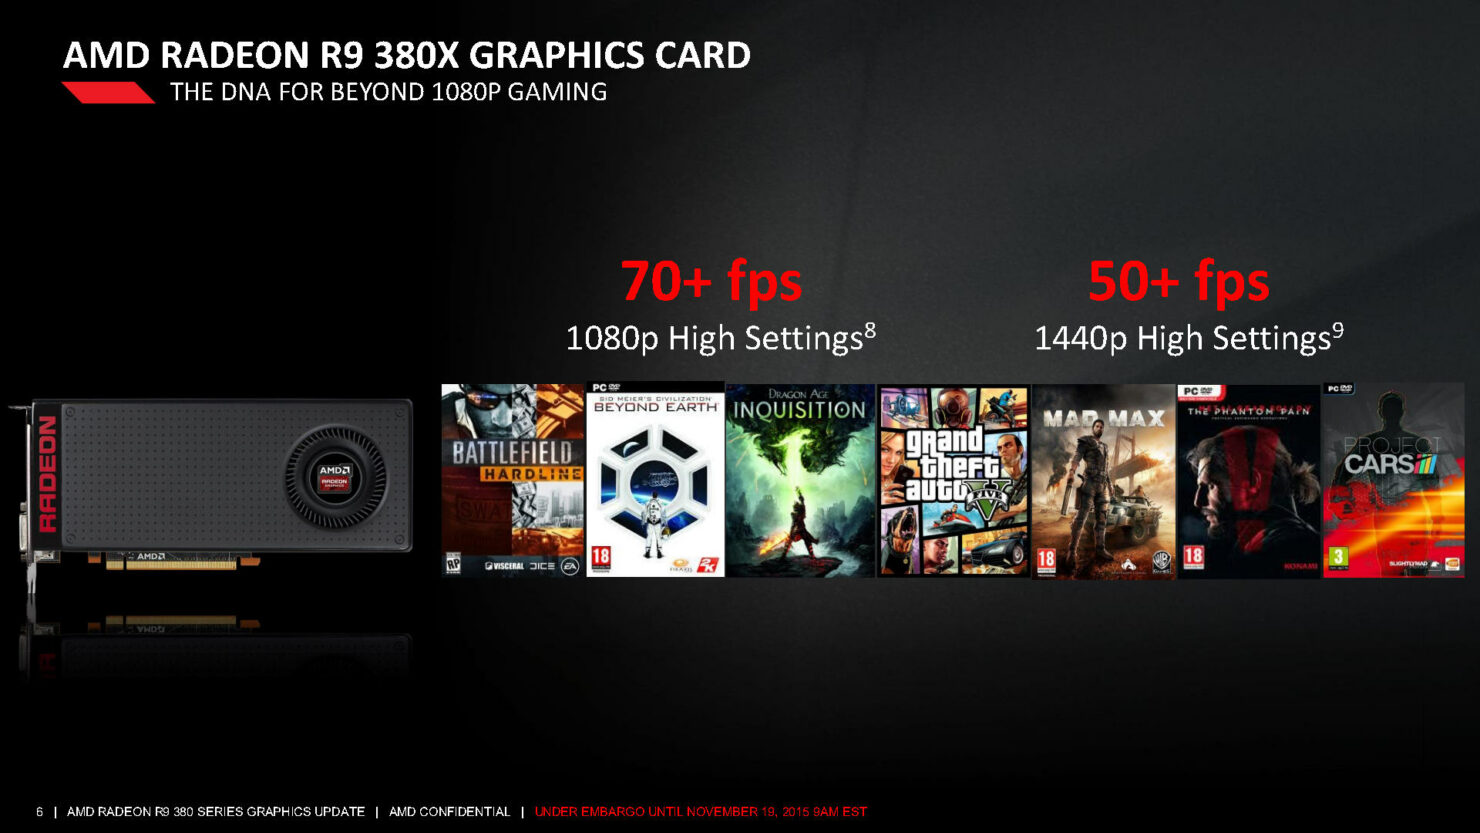 amd-radeon-r9-380x-press-deck-legally-approved-incl-aib-boardsjpg_page6